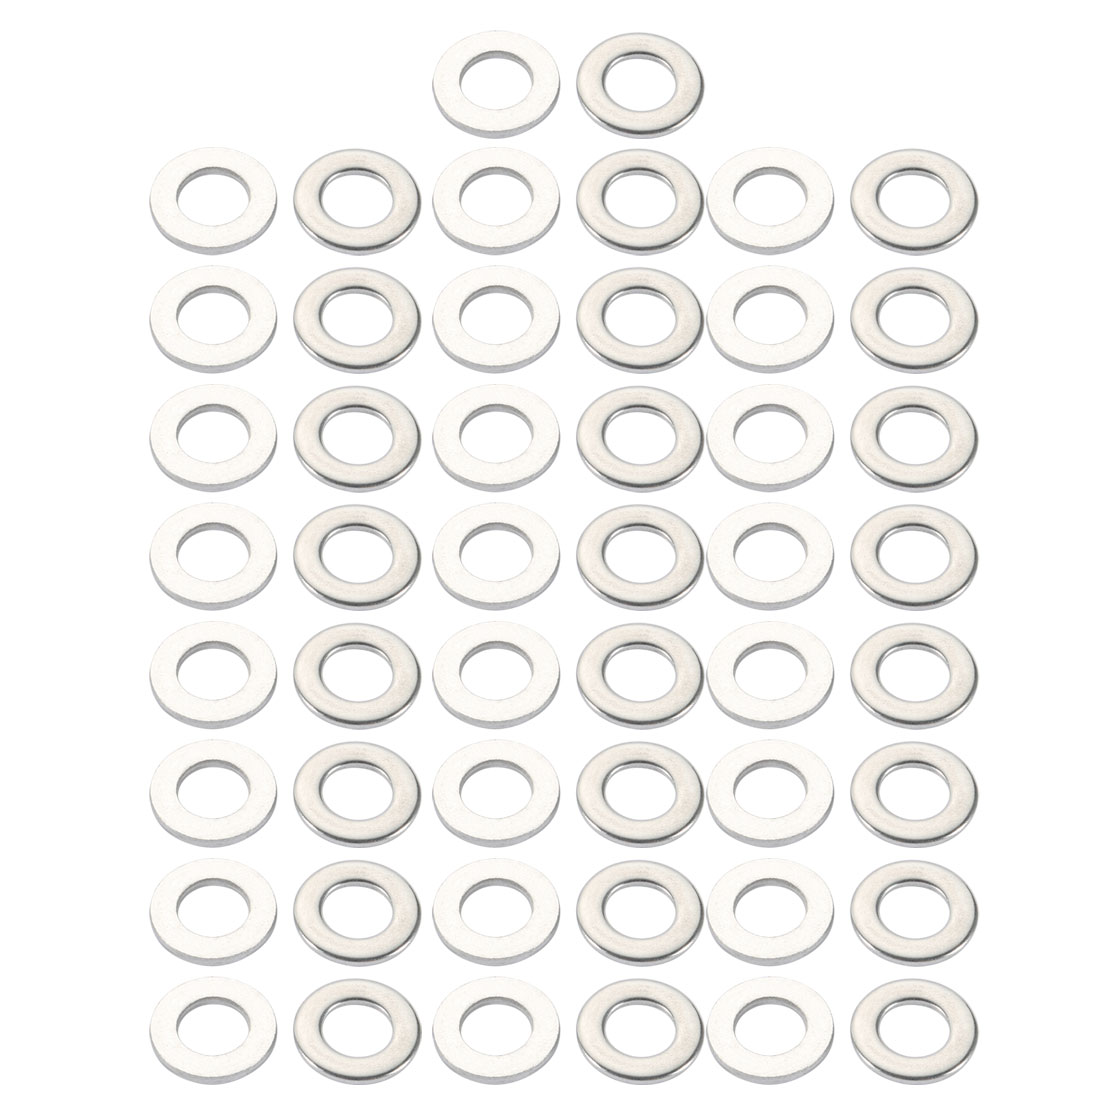 M10x20mmx2mm DIN125 316 Stainless Steel Flat Washer Silver Tone 50pcs